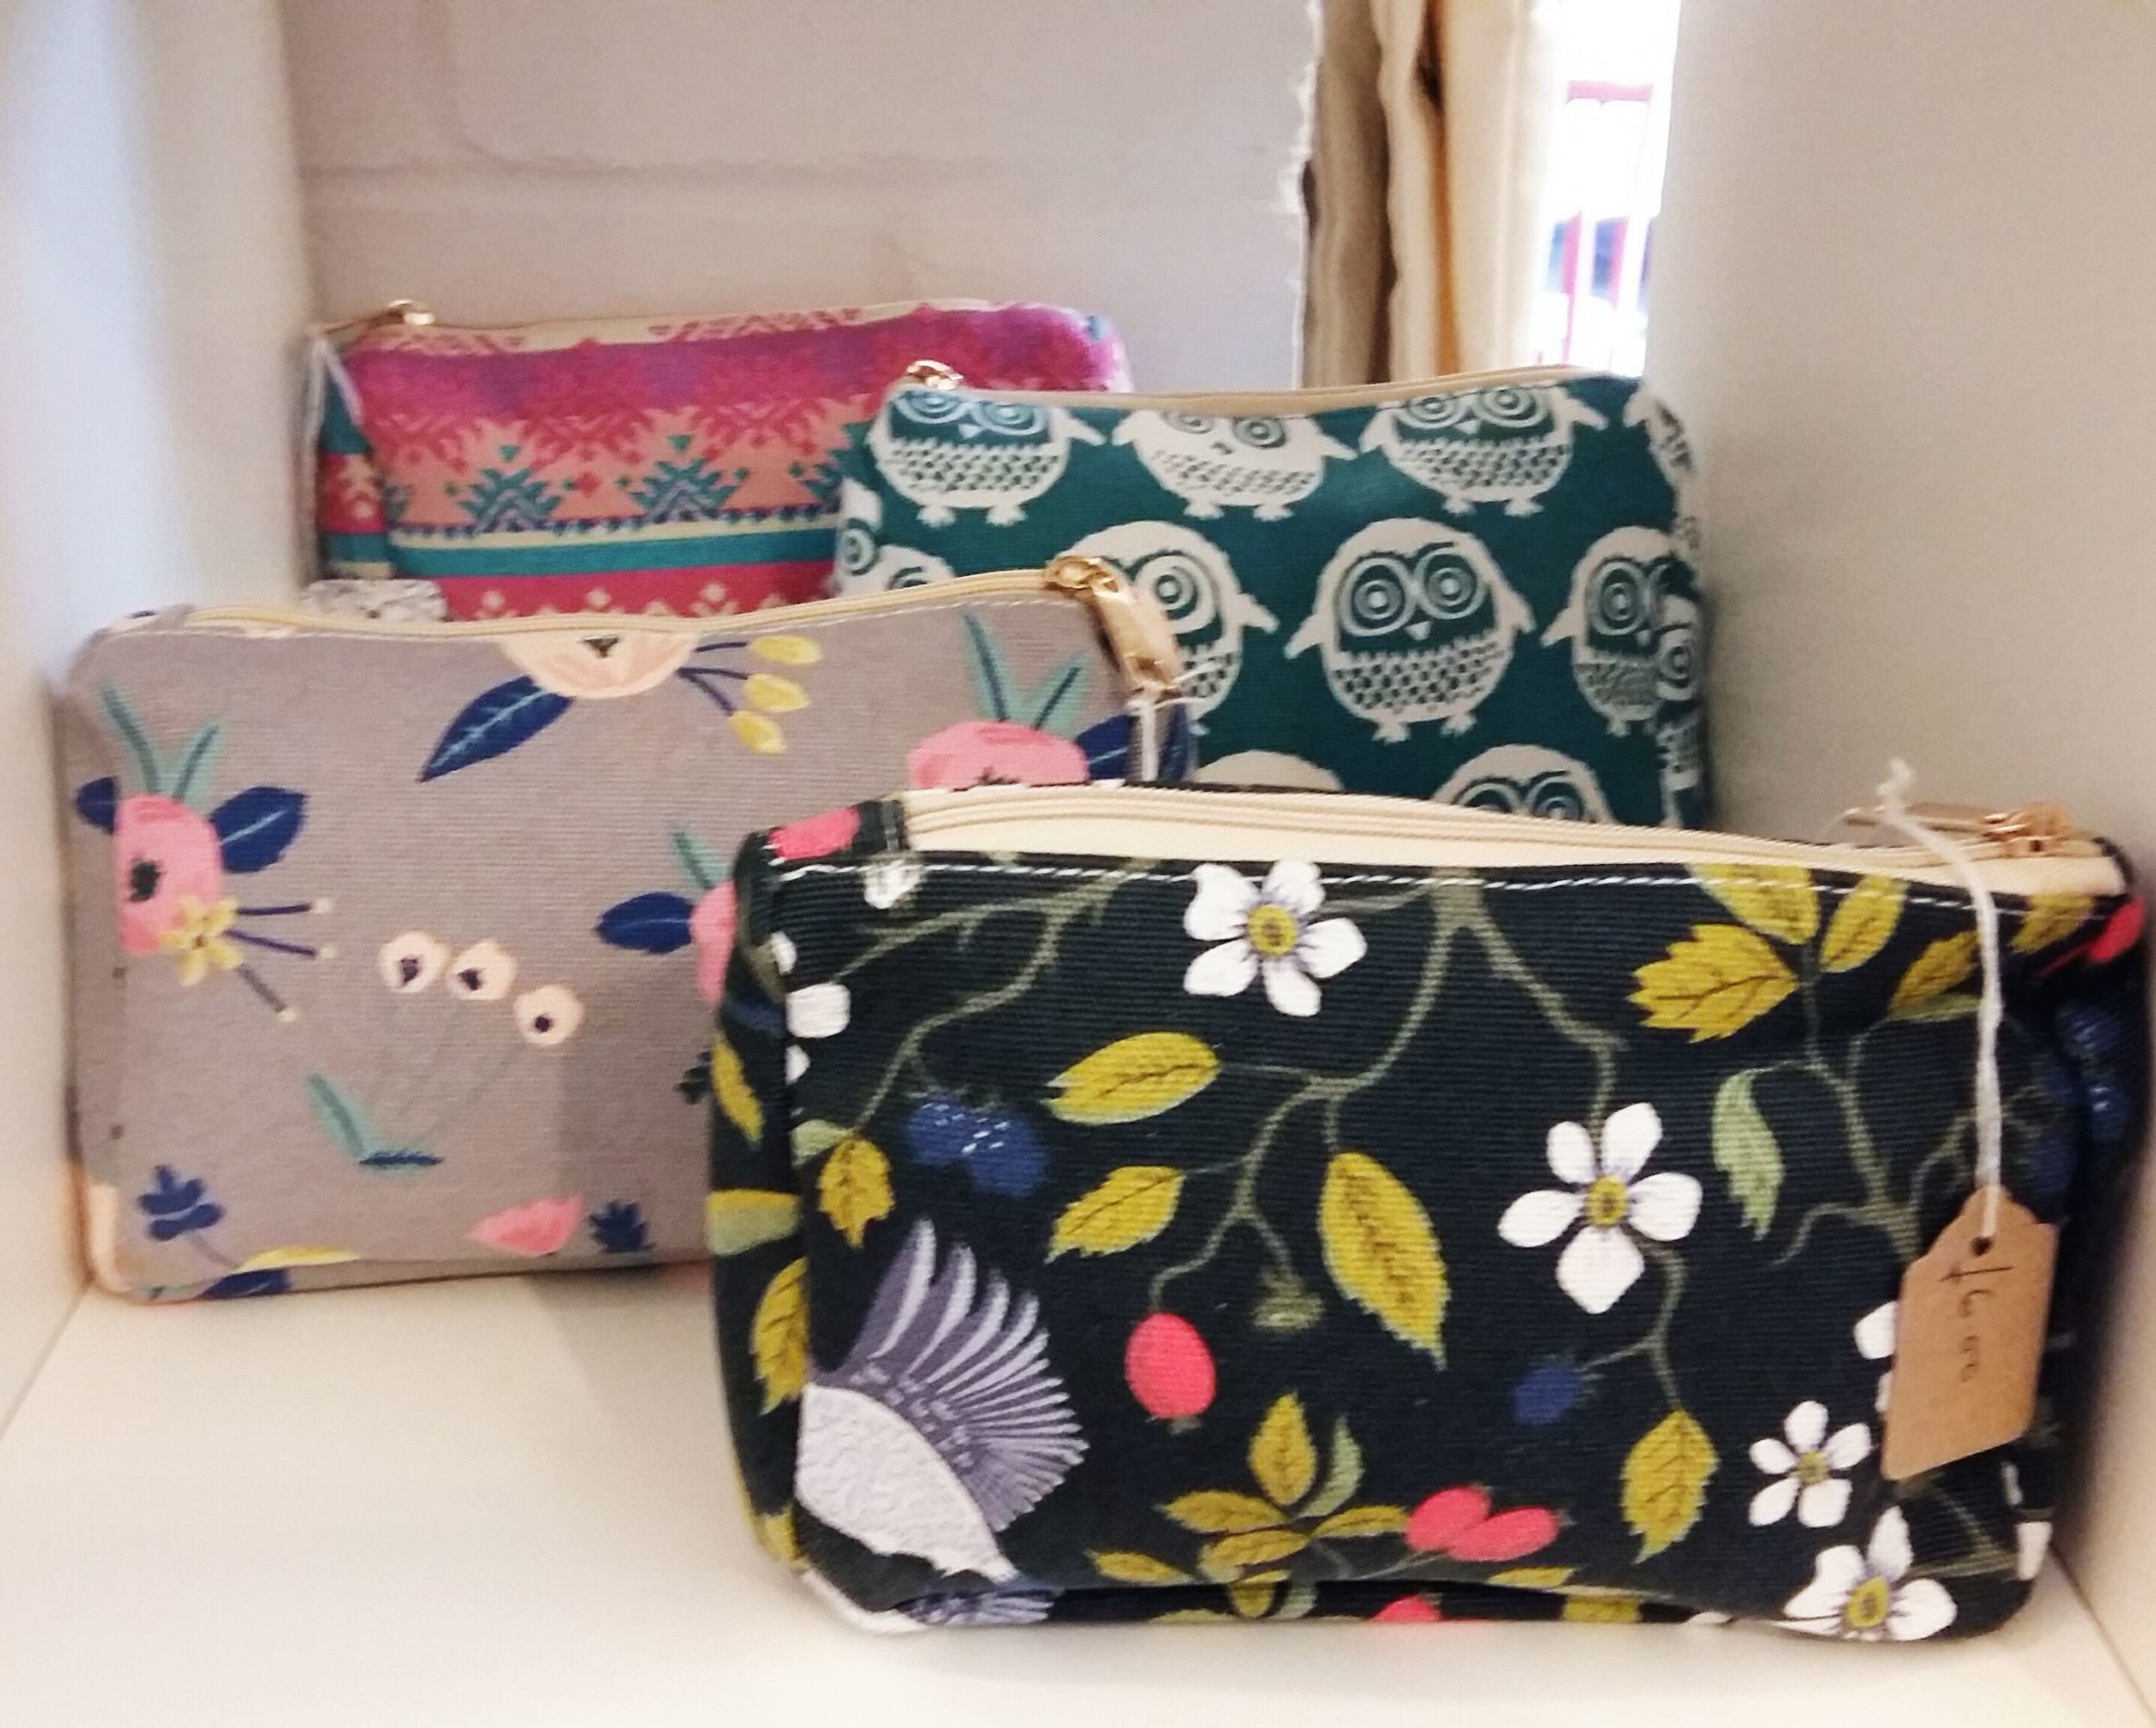 Make up bags from £5.00